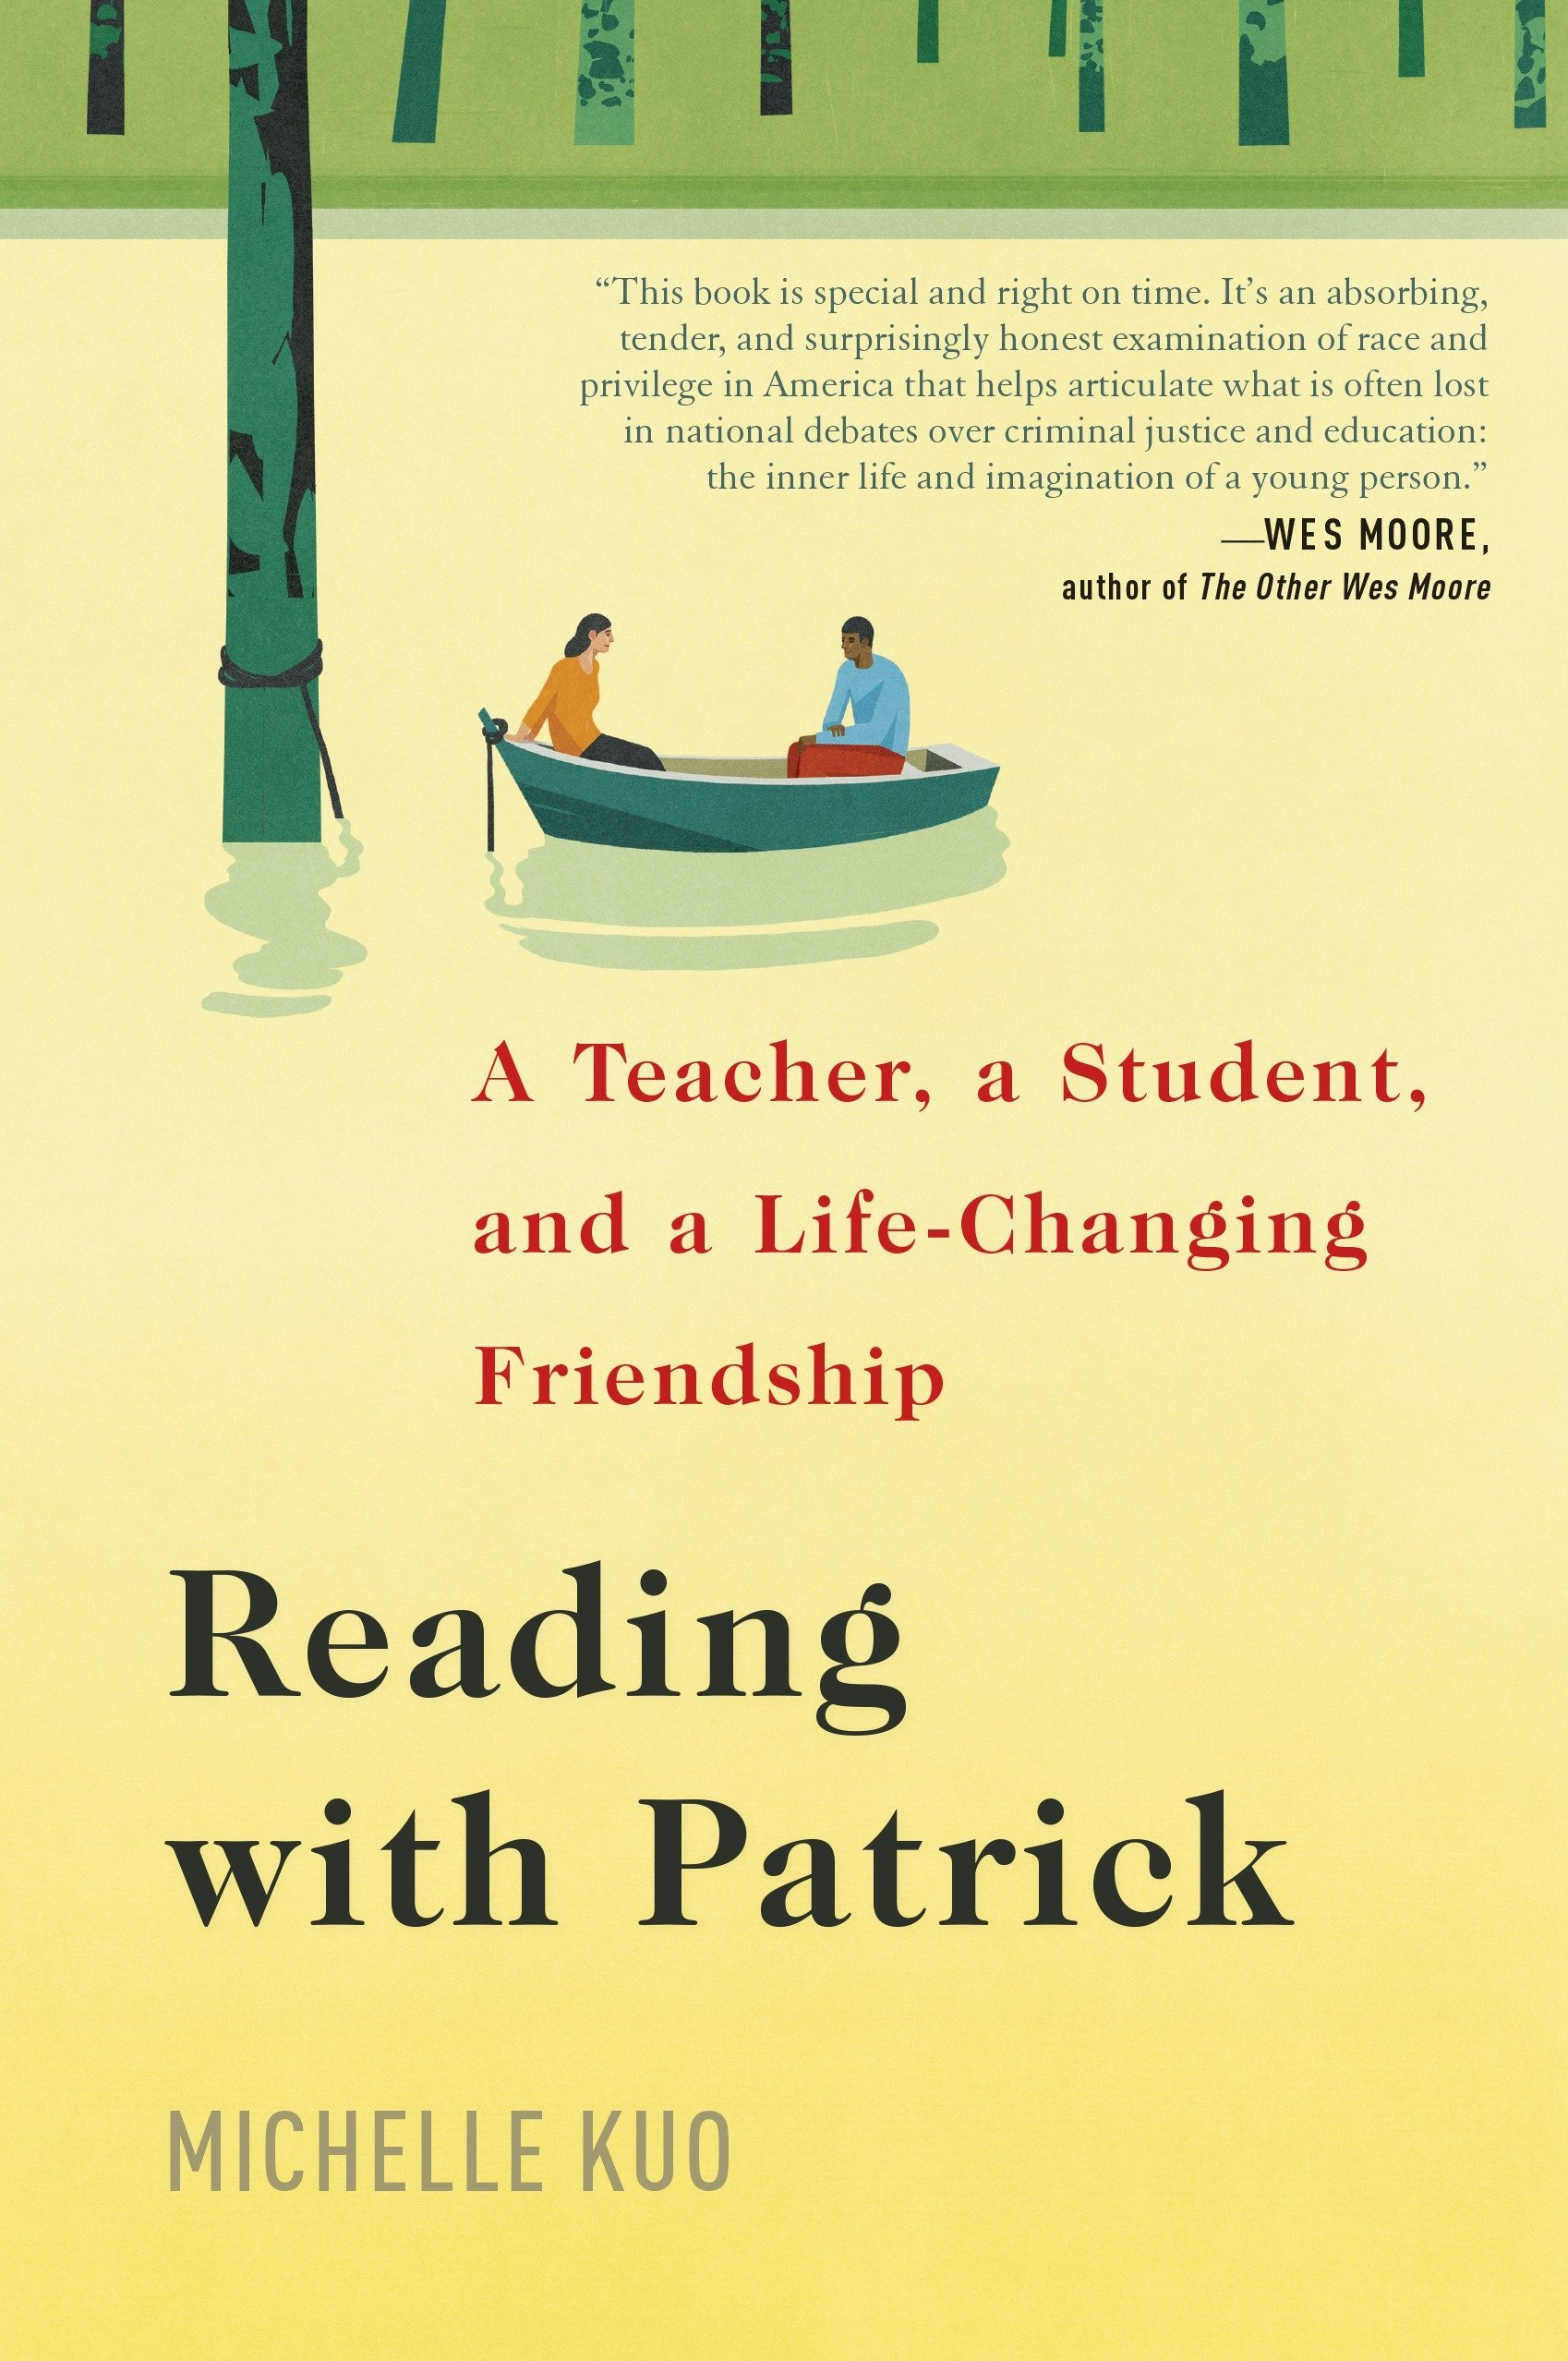 Reading with Patrick: A Teacher, a Student, and a Life-Changing Friendship:  Kuo, Michelle: 9780812997316: Amazon.com: Books